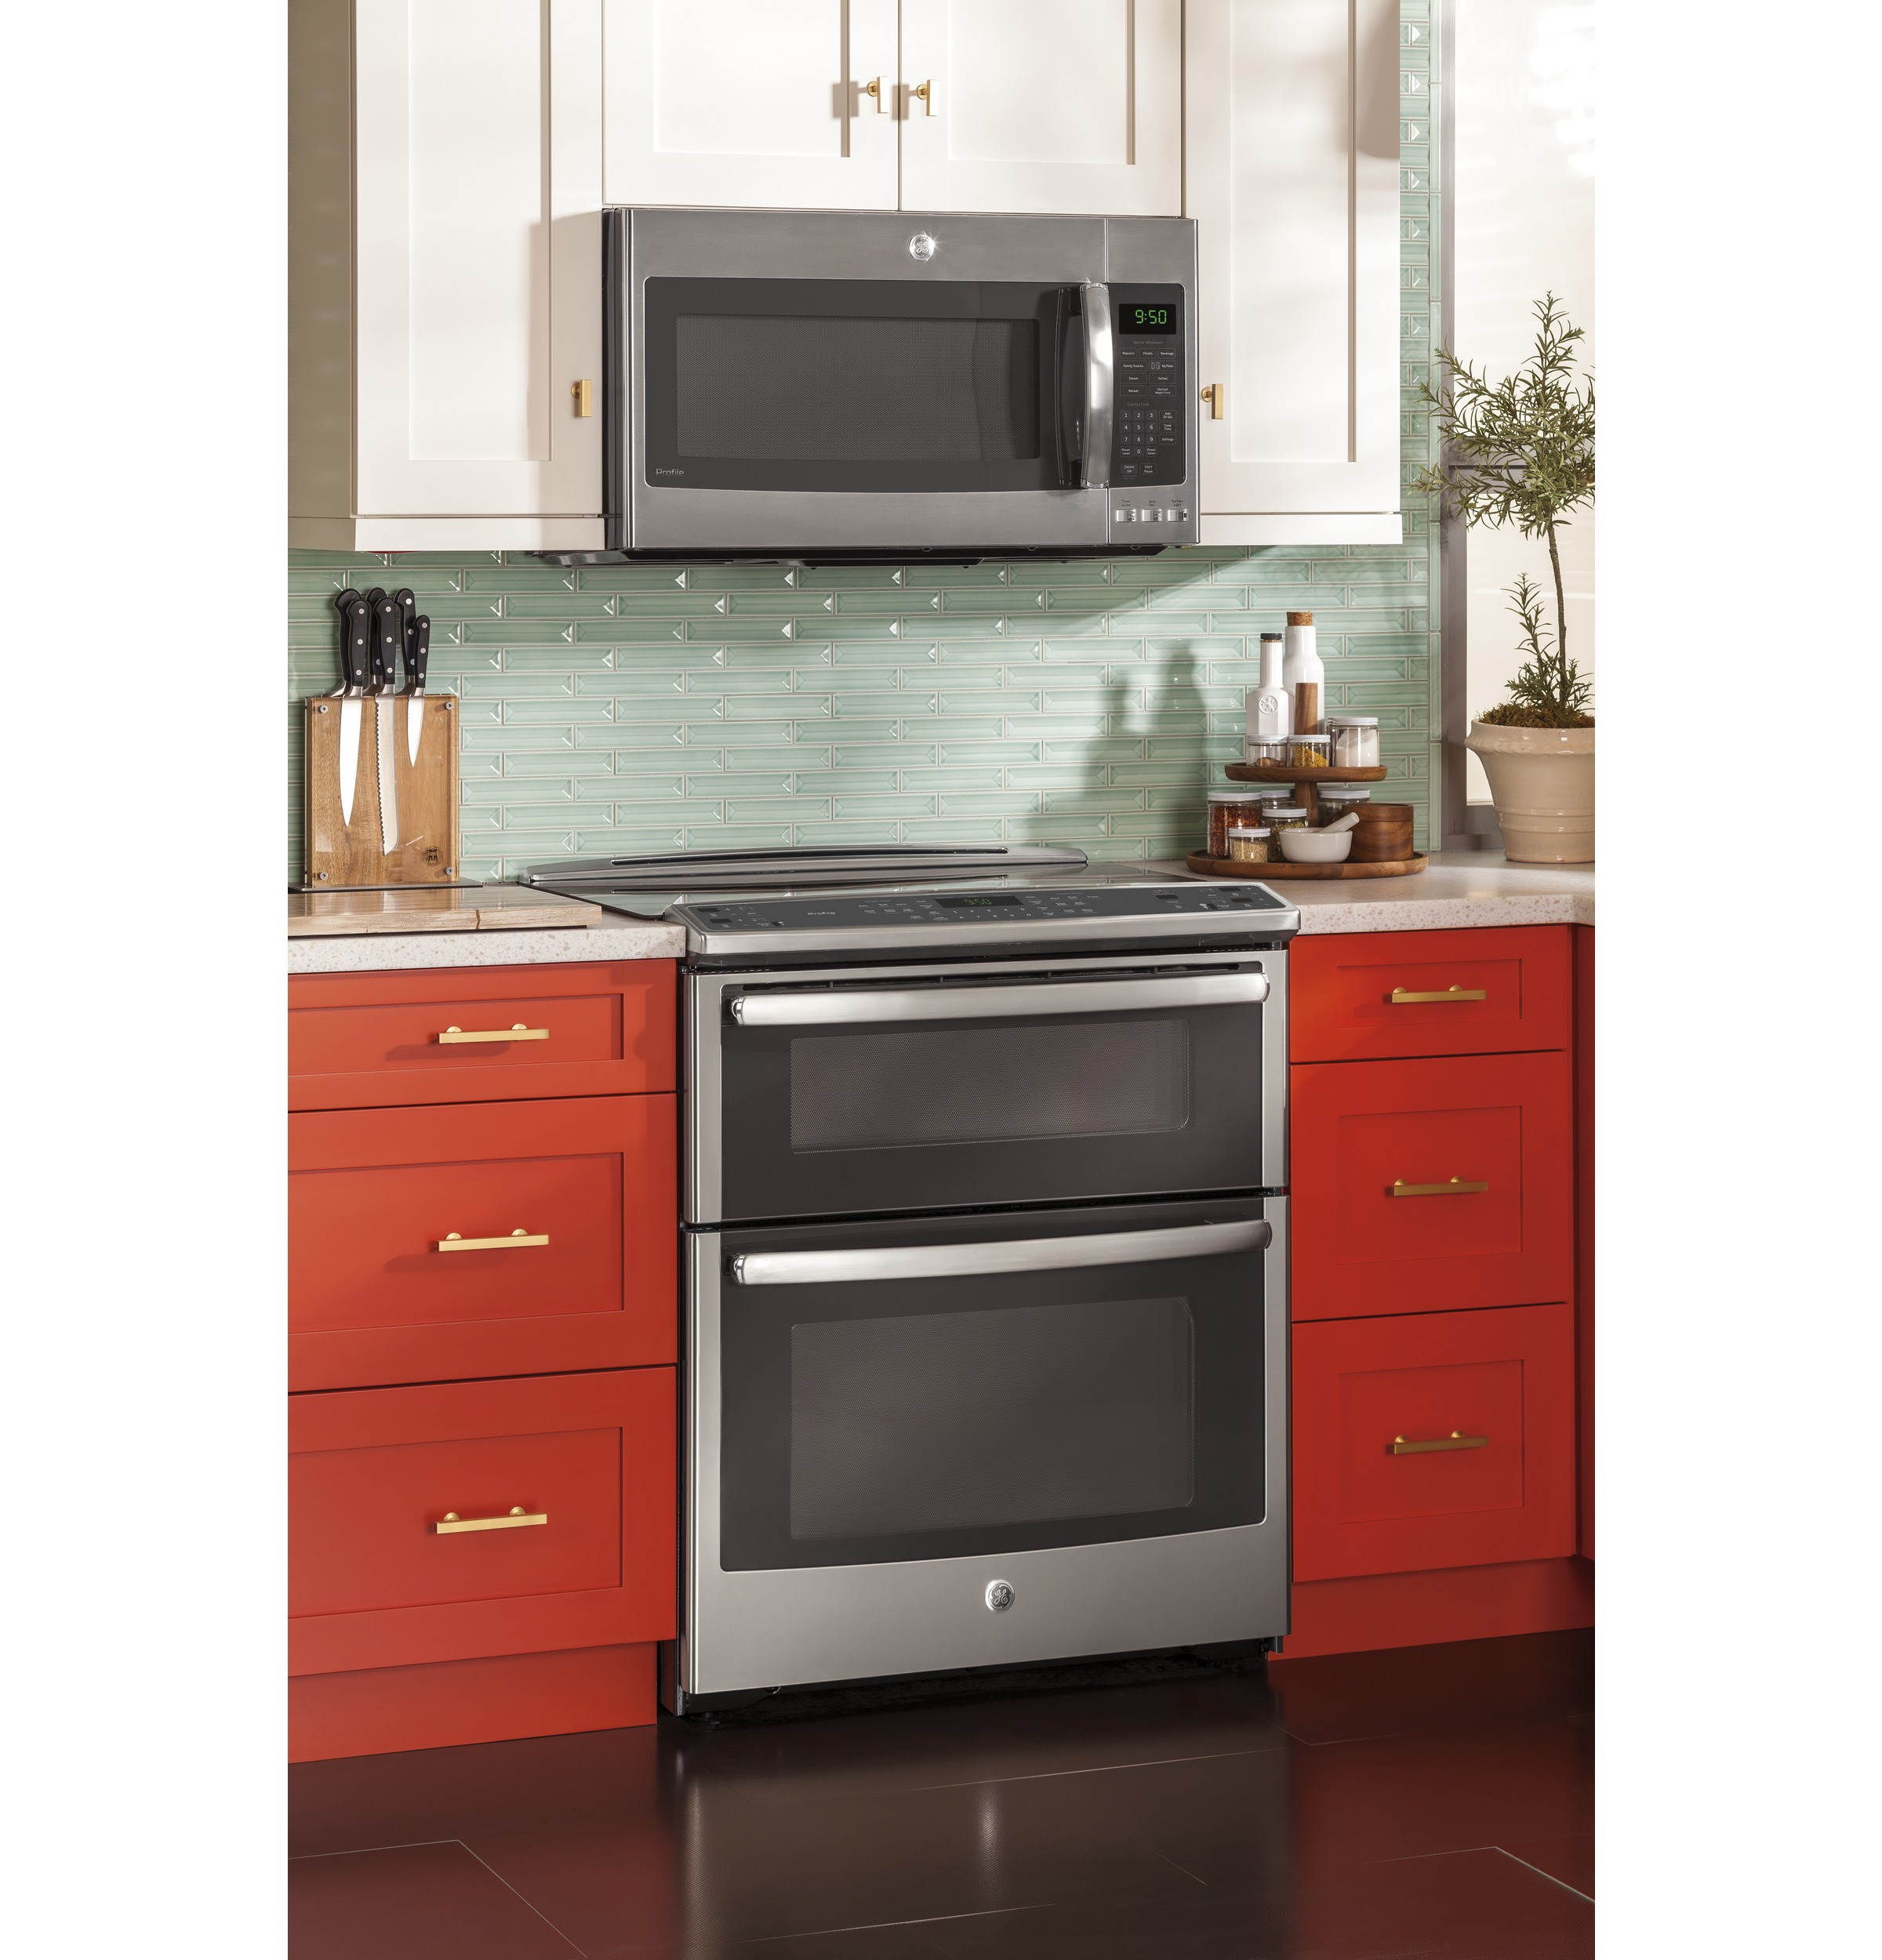 Side by side double oven gas stove -  Product Image